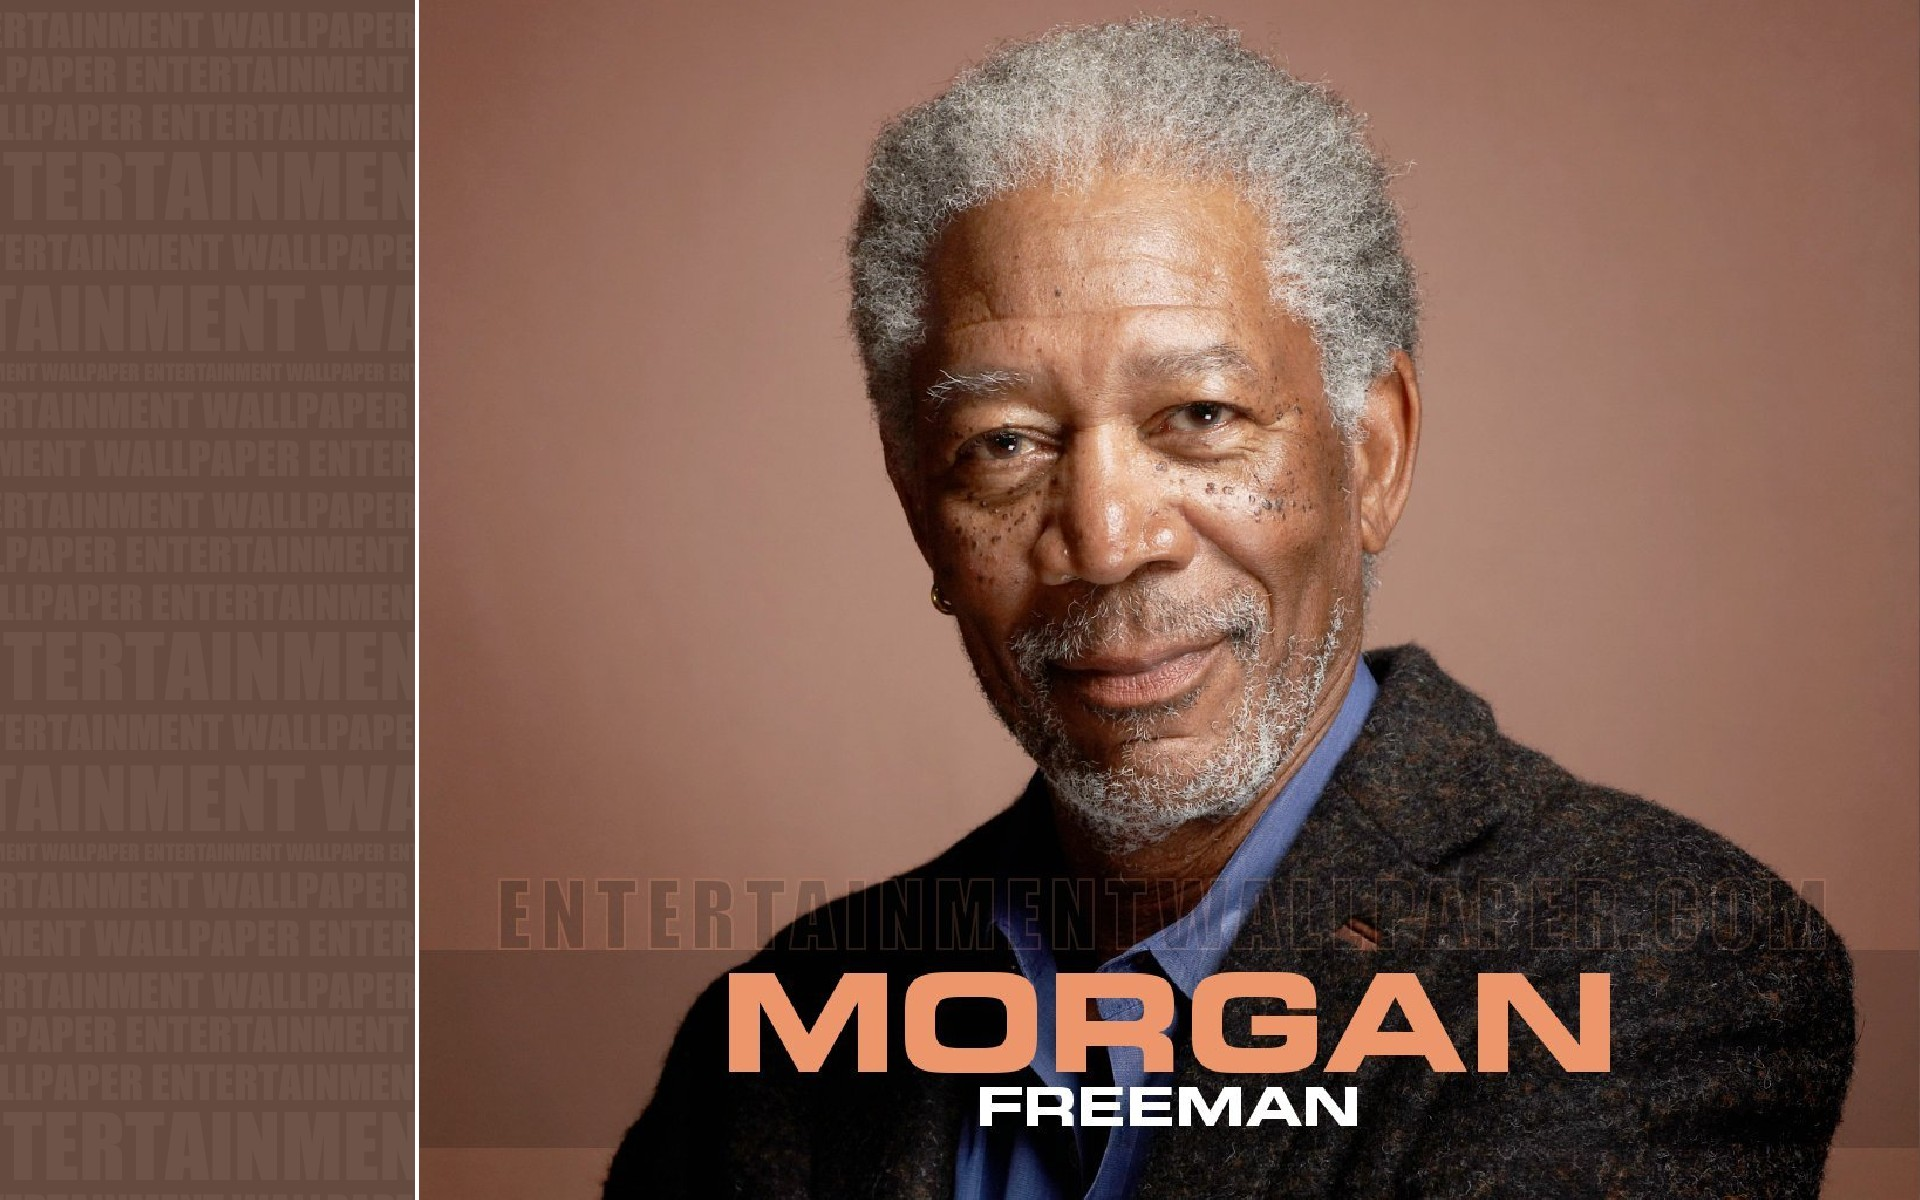 Morgan Freeman Wallpaper - Original size, download now.